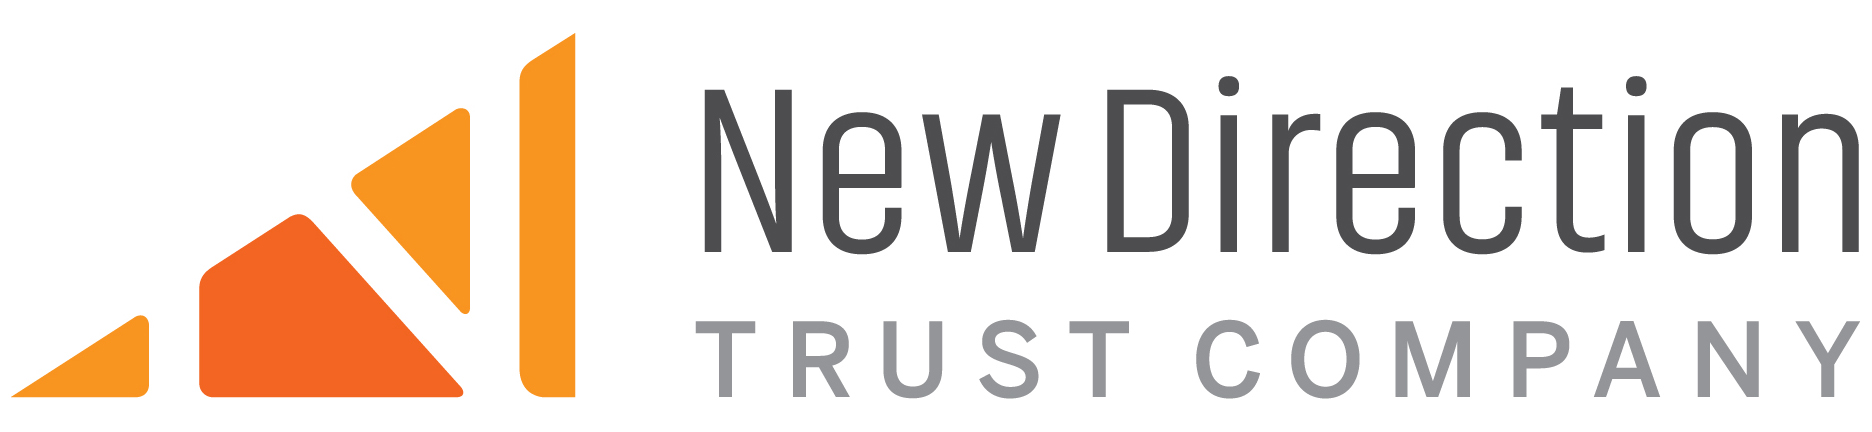 New_Direction_Trust_Company_Logo.jpeg